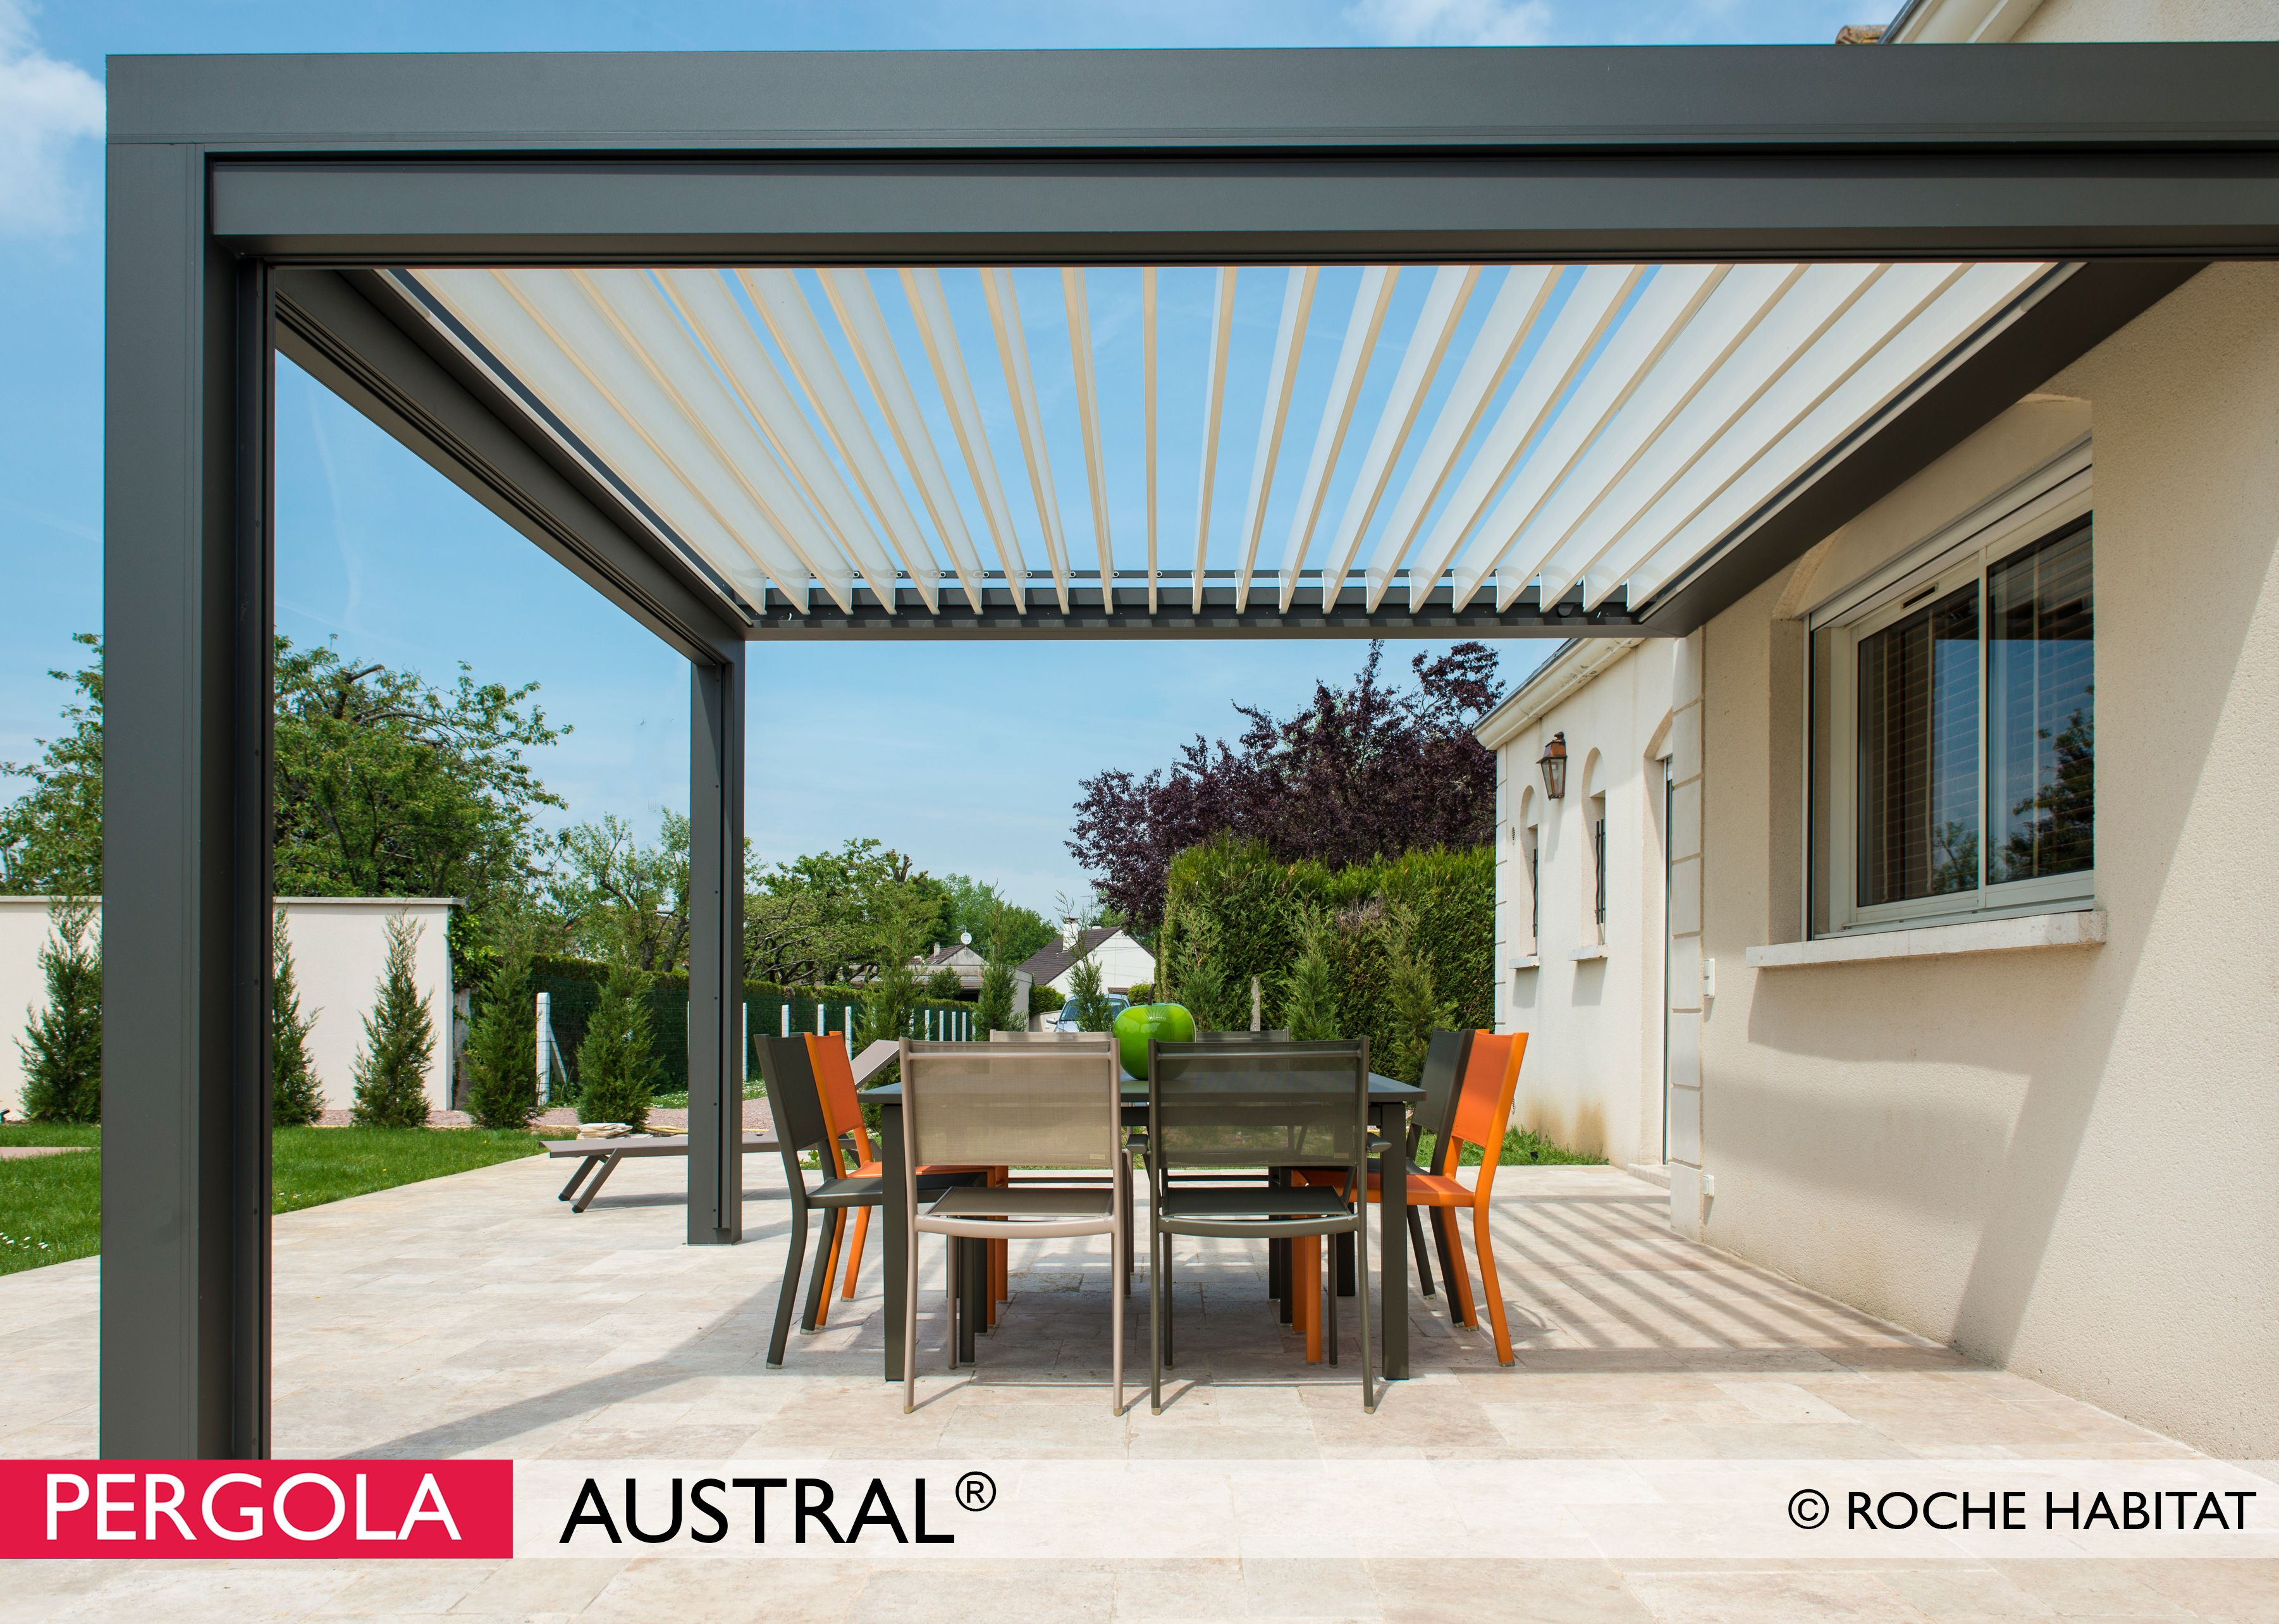 pergola austral by roche habitat un projet de pergola alu. Black Bedroom Furniture Sets. Home Design Ideas